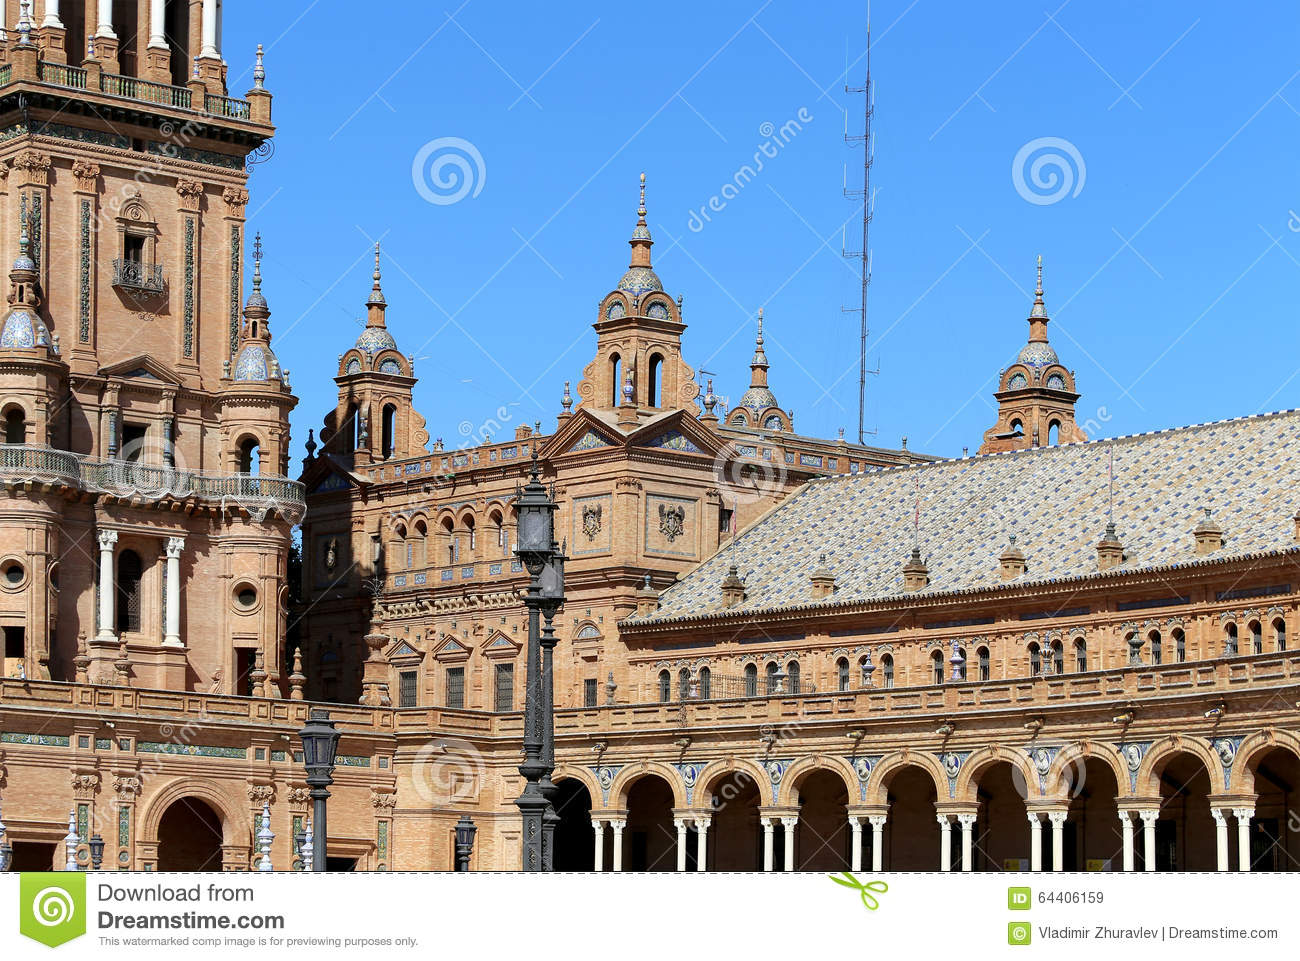 List Of Synonyms And Antonyms Of The Word Espana Buildings